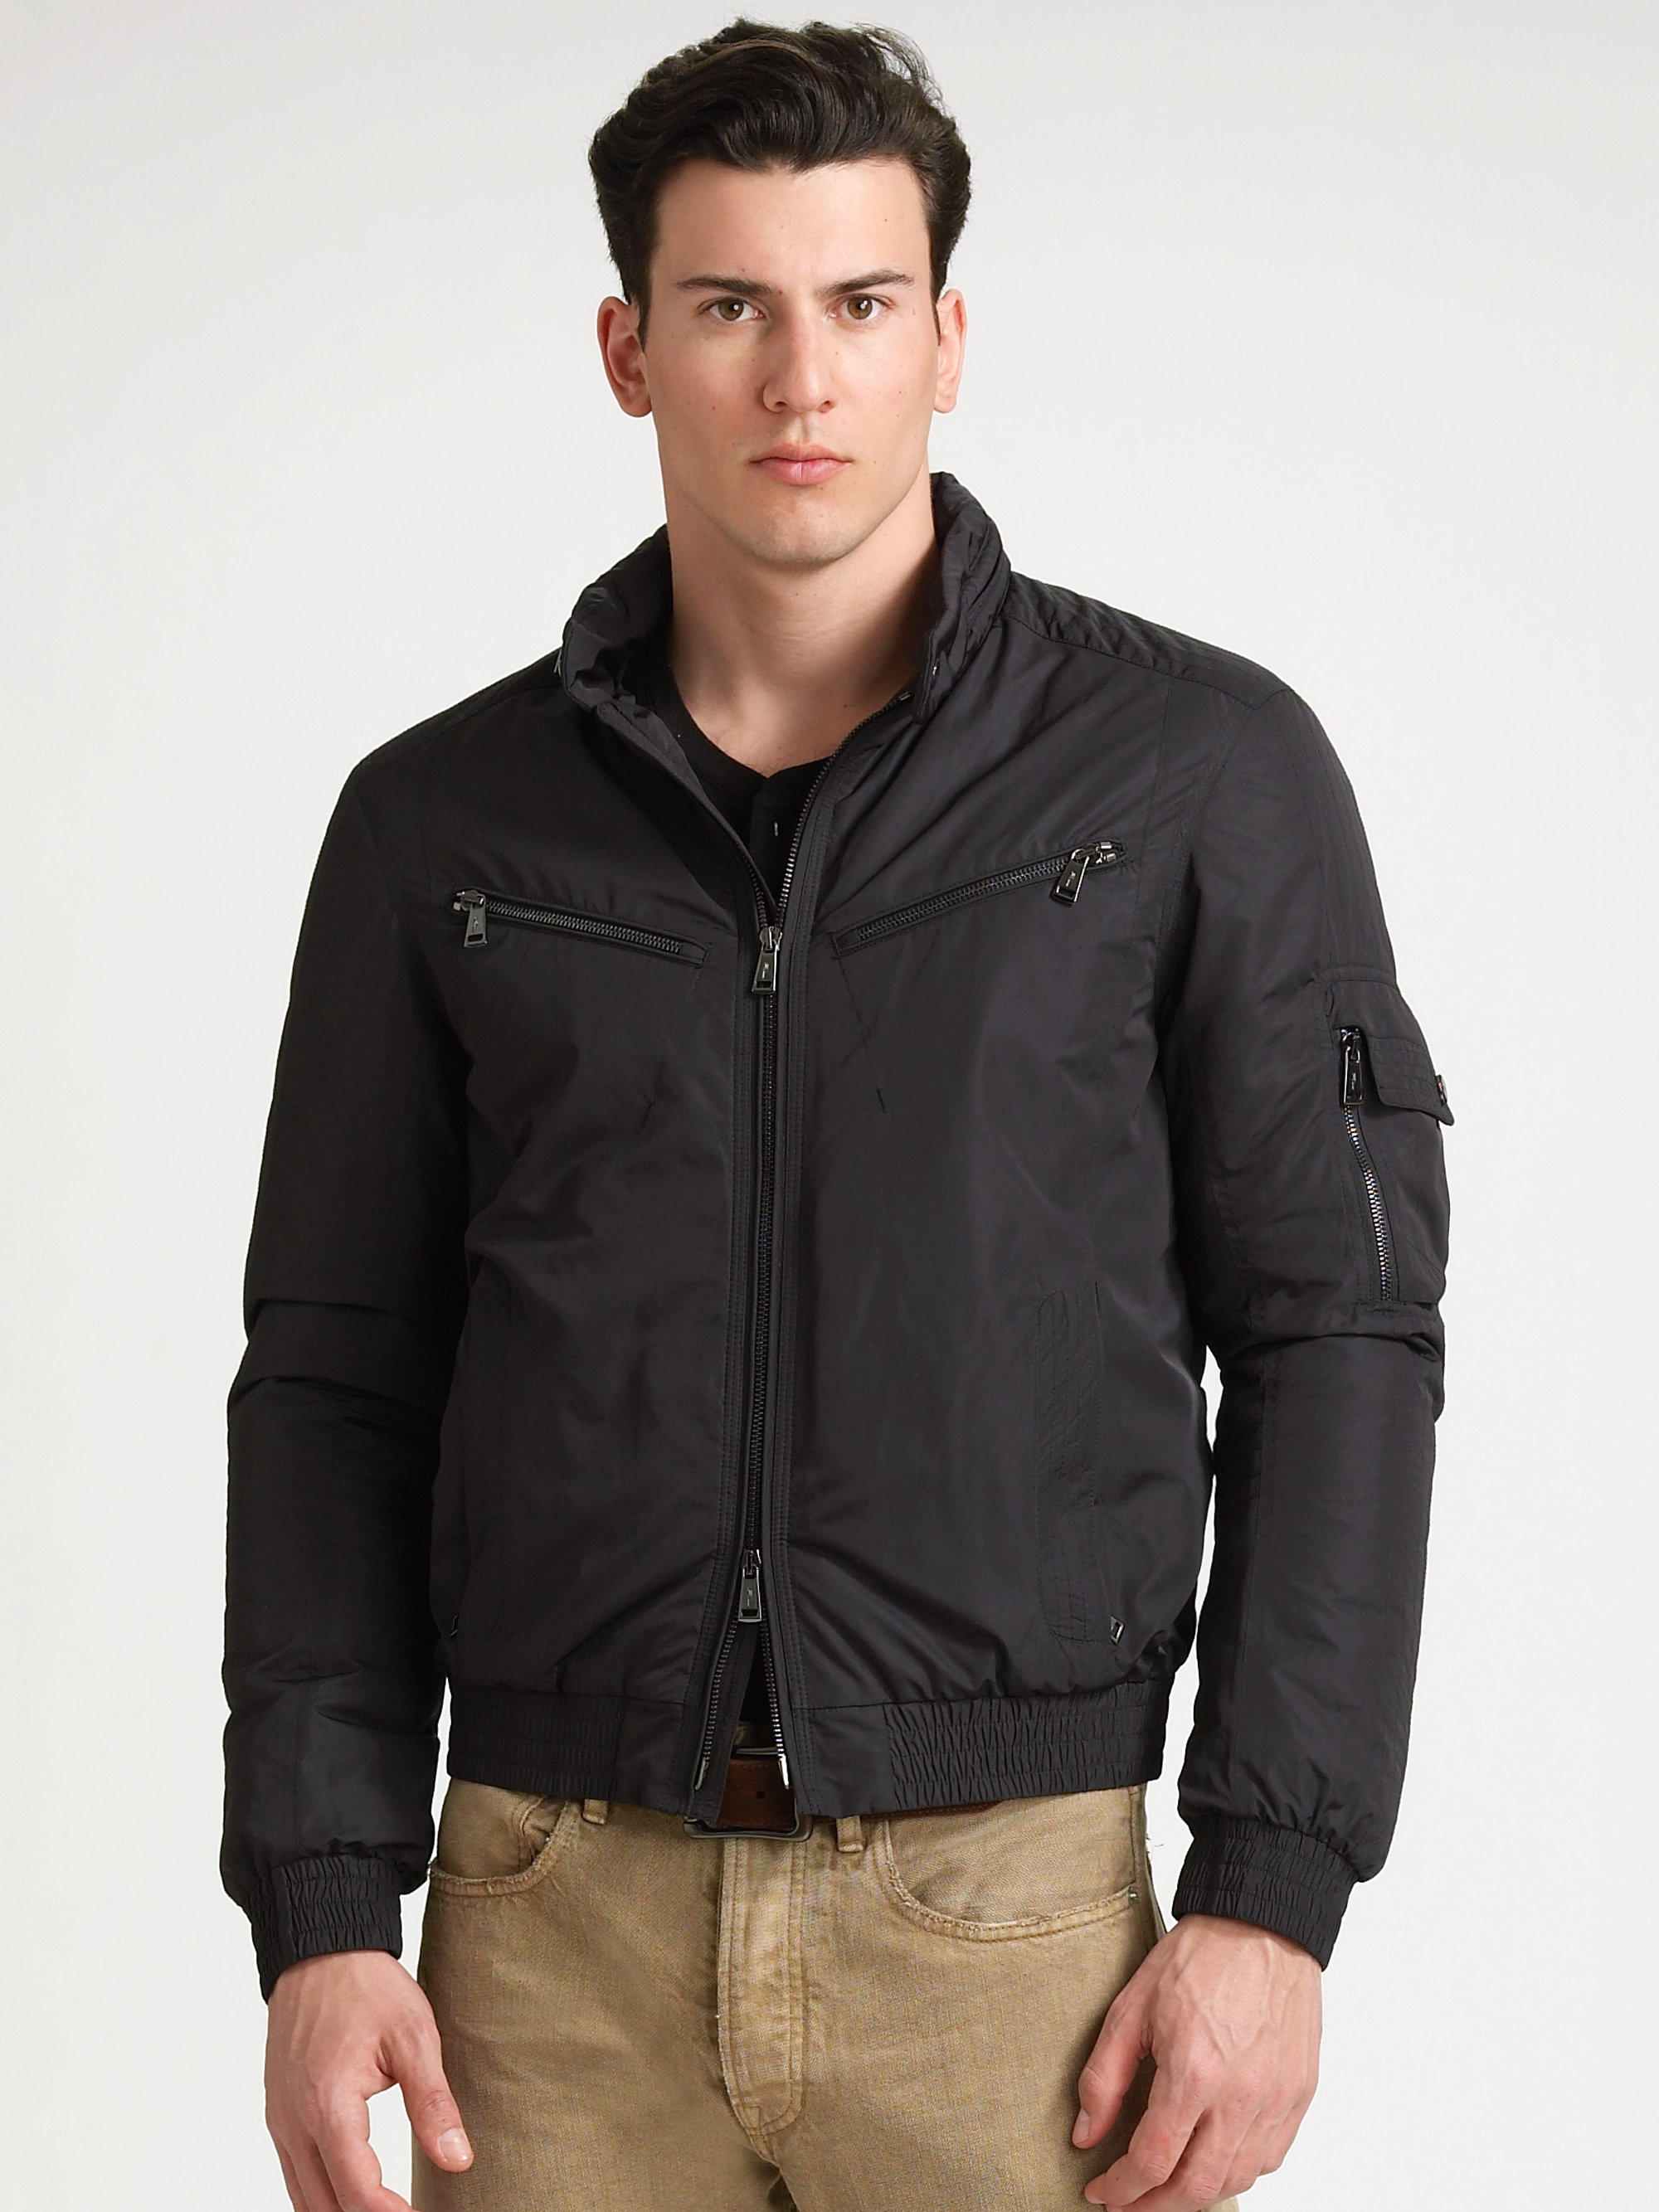 Ralph lauren black label Loft Tech Bomber Jacket in Black for Men | Lyst